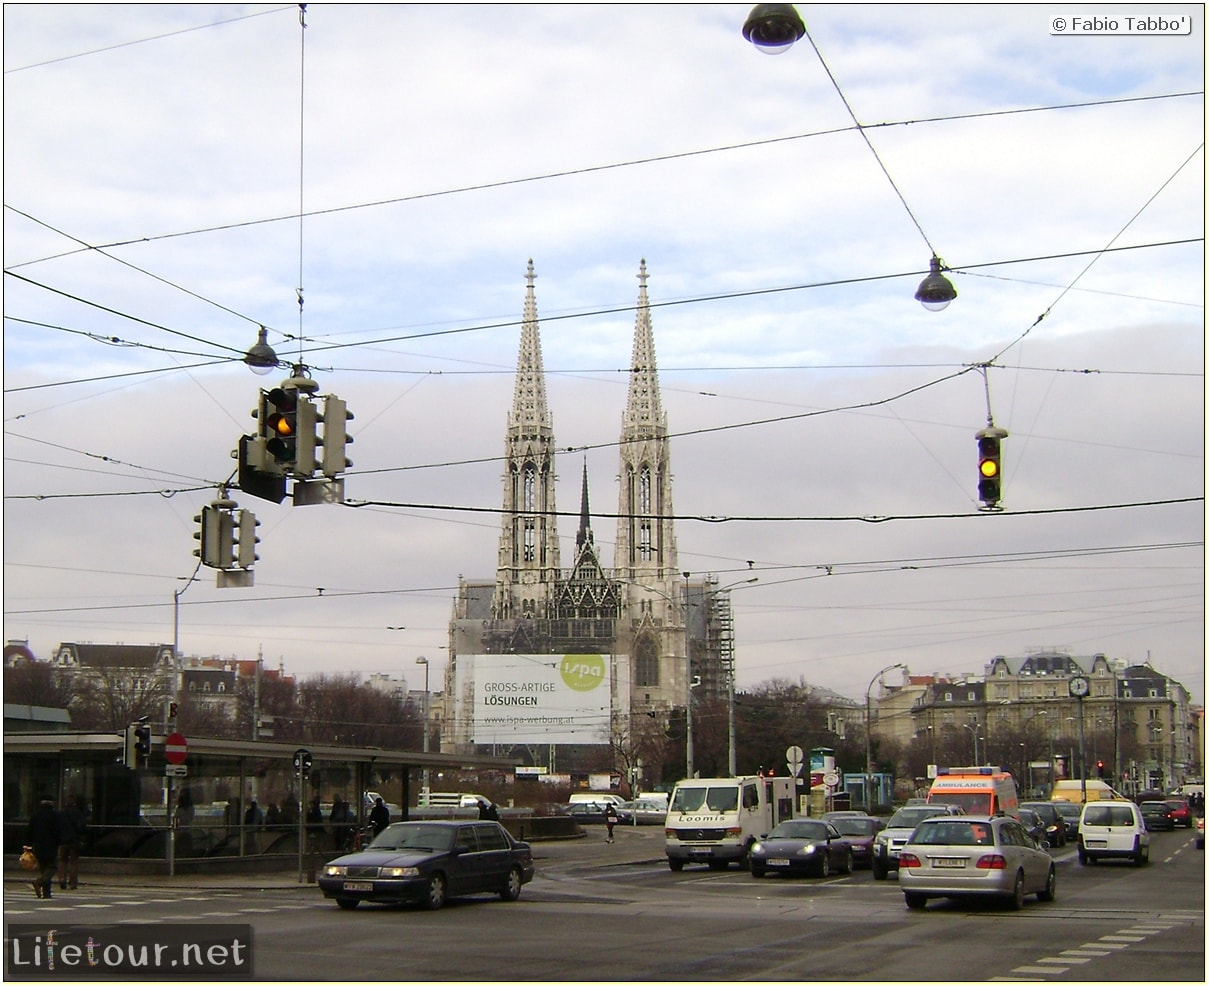 Fabios-LifeTour-Austria-1984-and-2009-January-Vienna-other-pictures-of-Vienna-City-Center-410